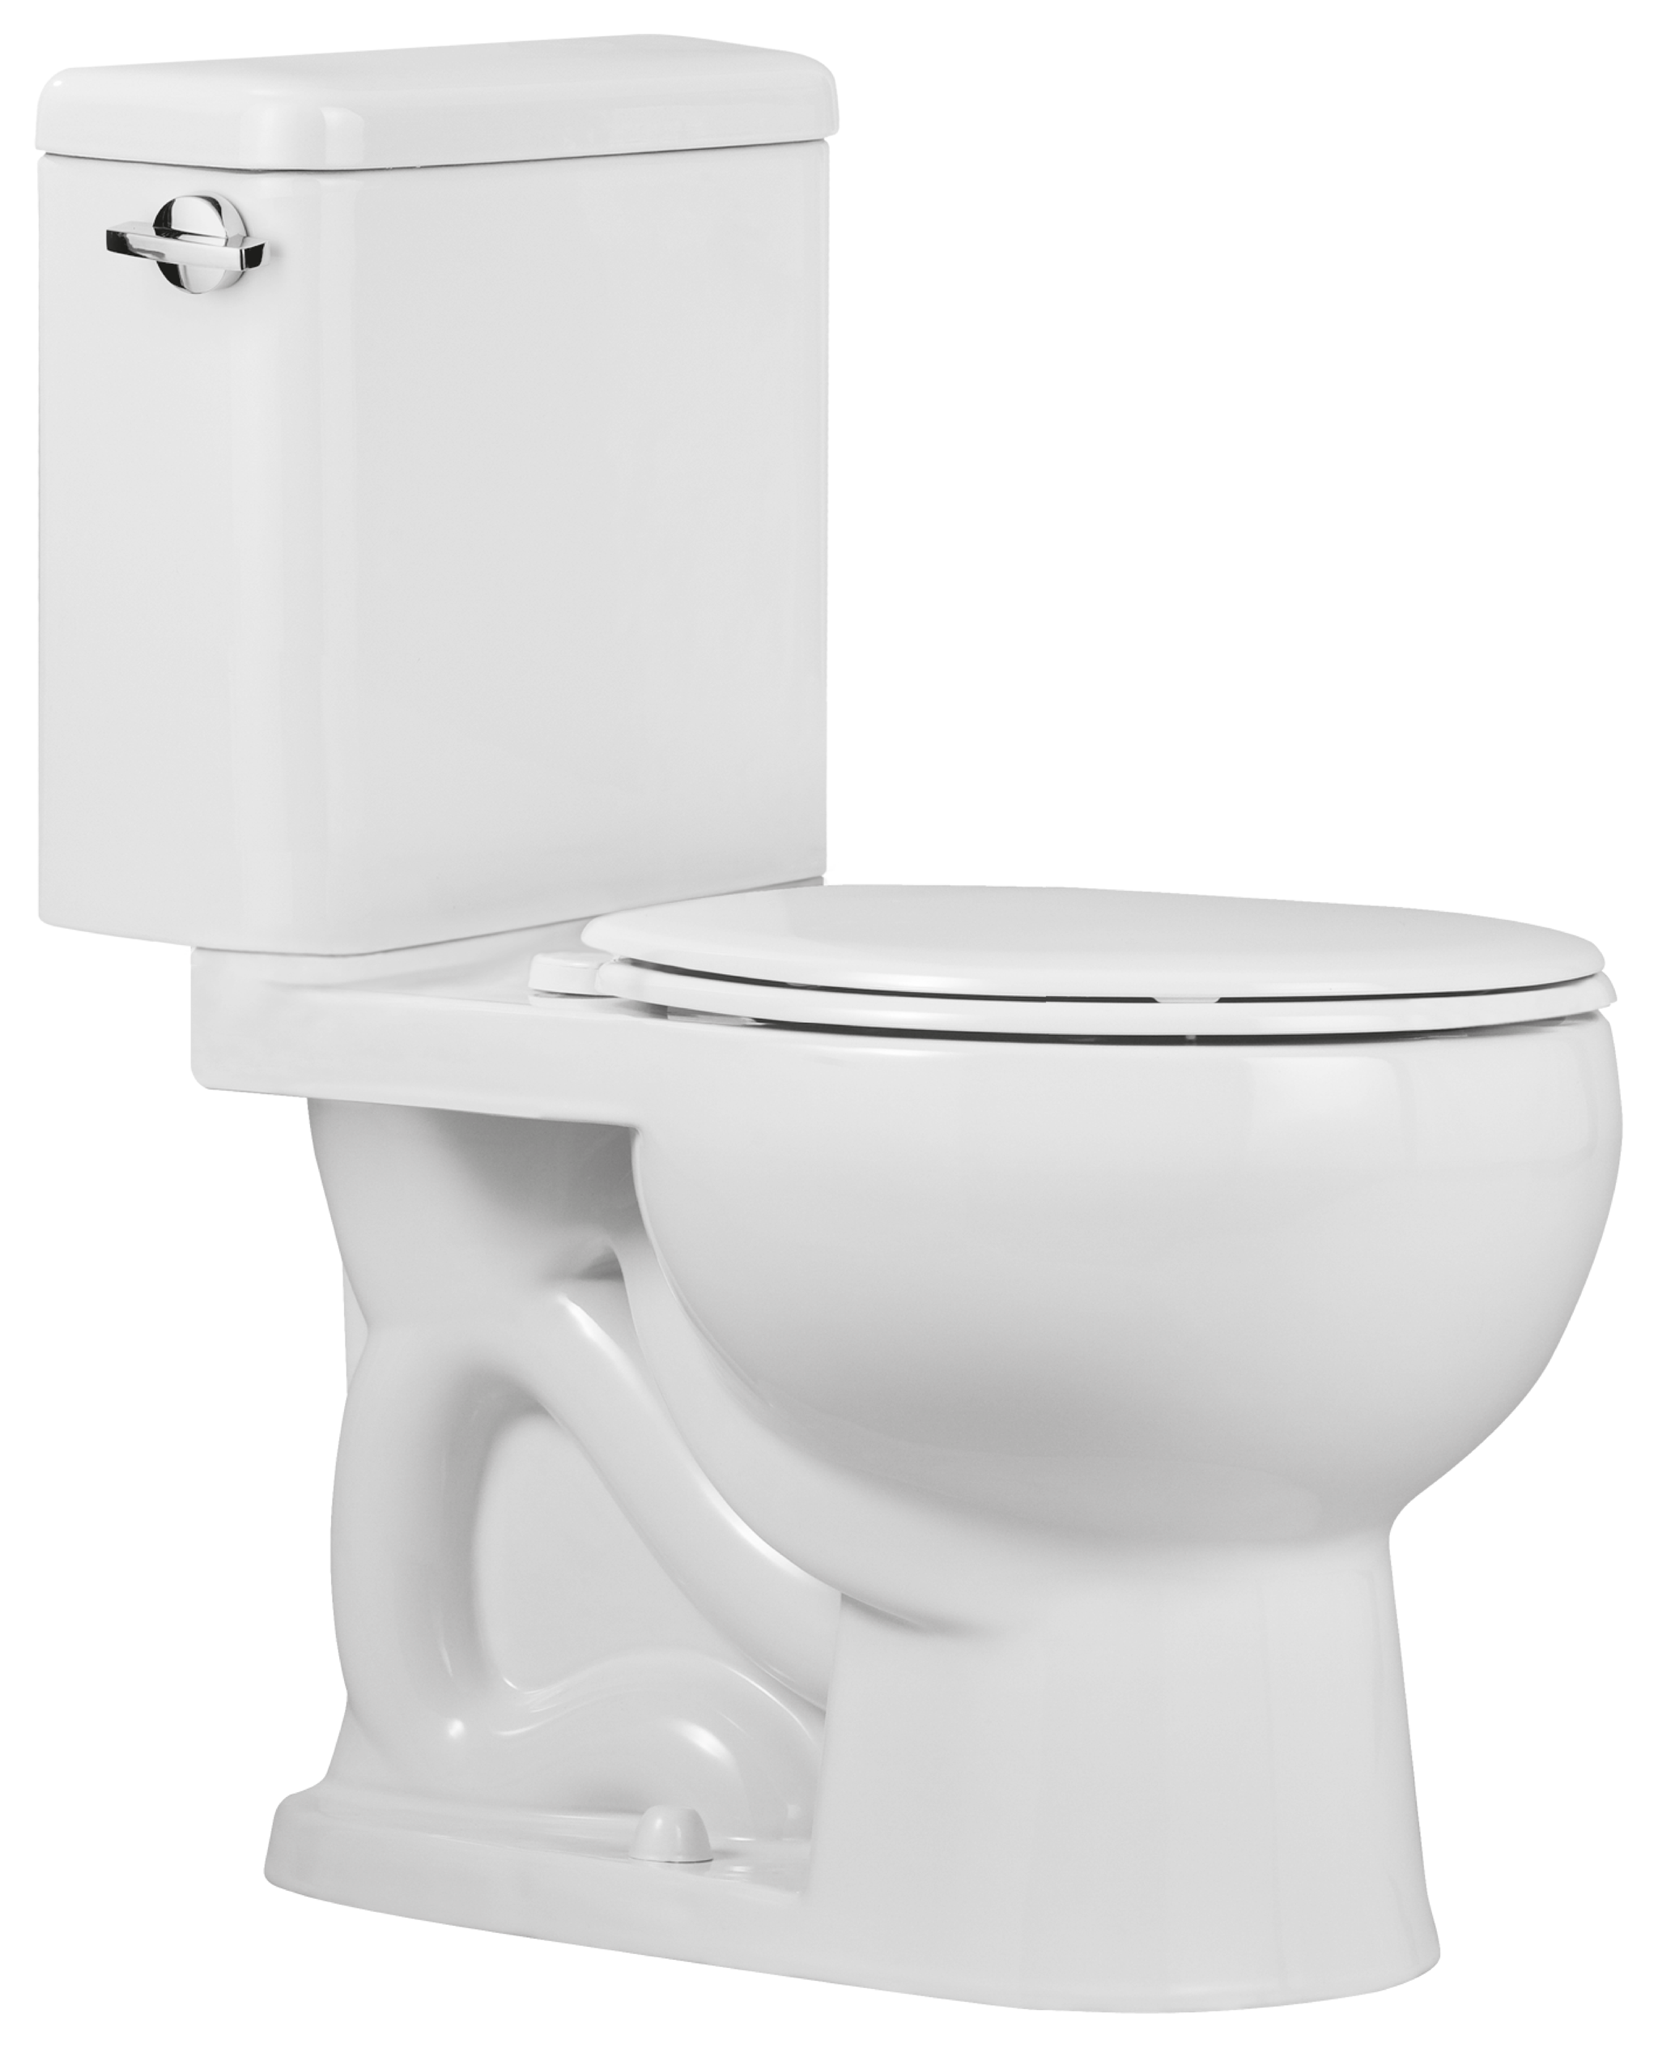 Toilet Dimensions.2 Hd Pictures RBB1. «« - Toilet HD PNG